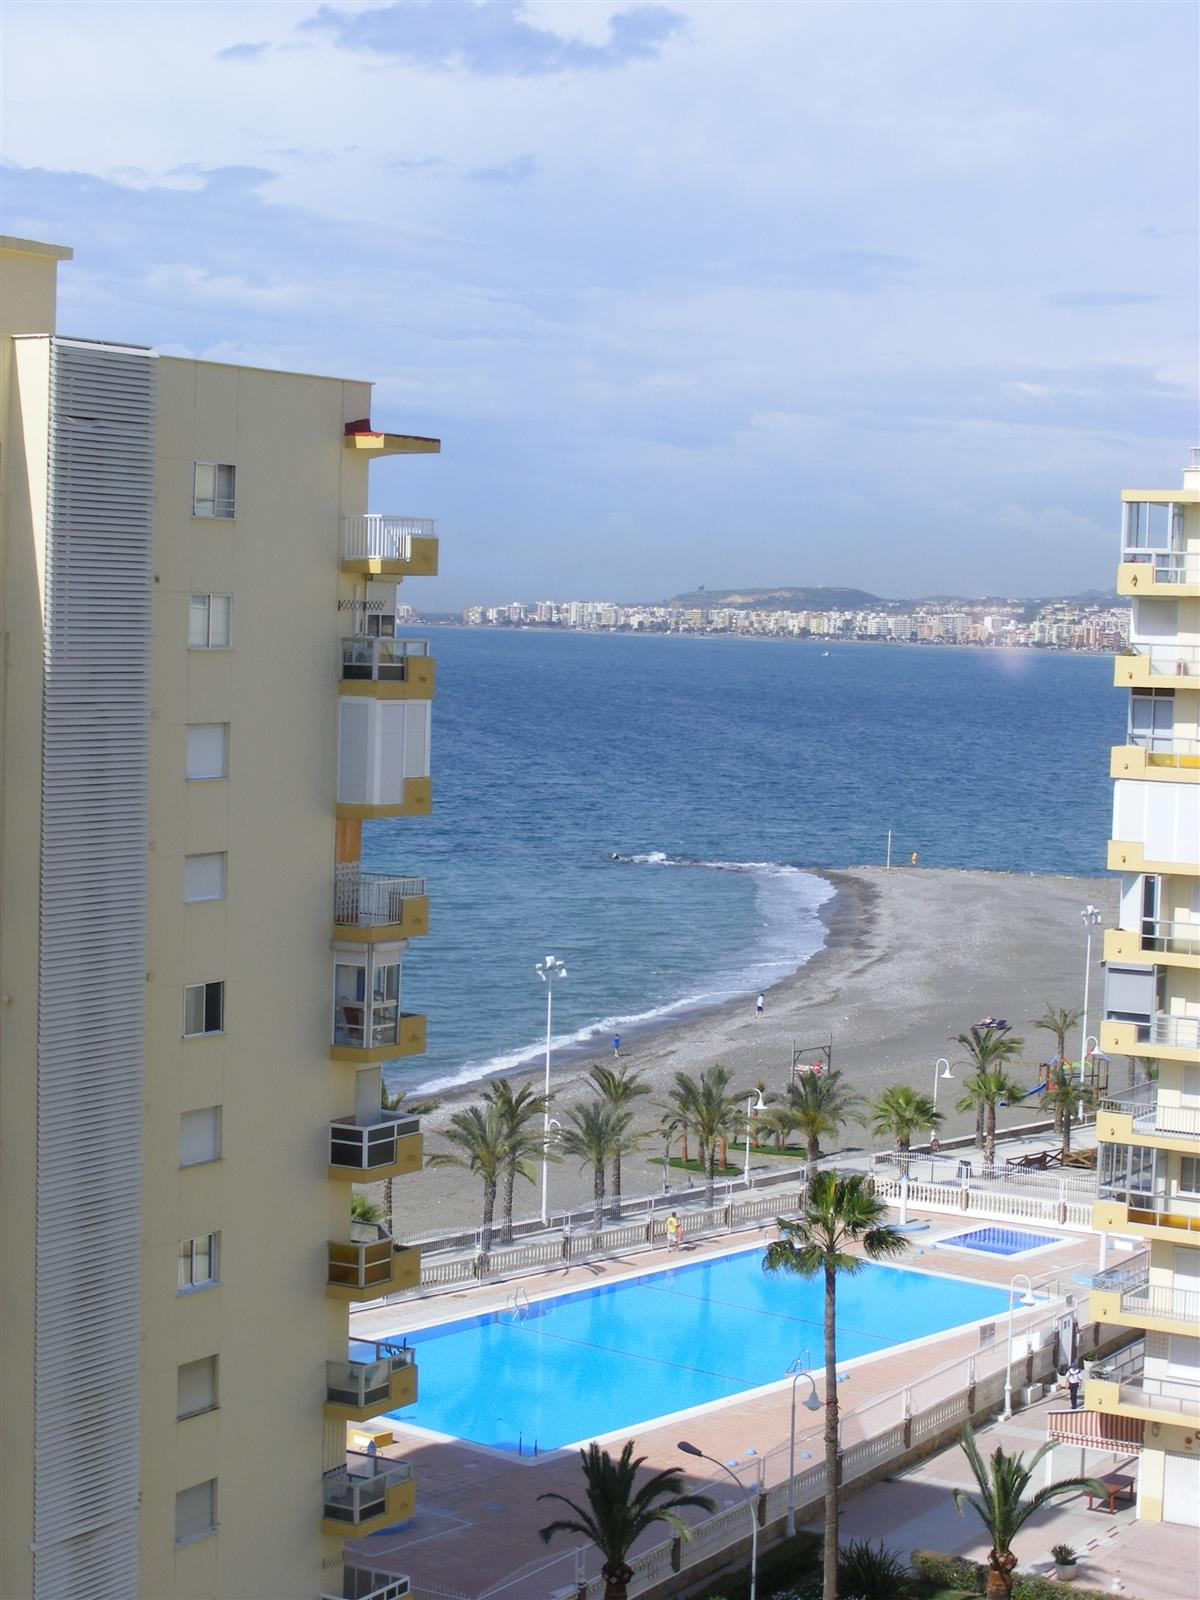 The view from the balcony showing the communal pool and beach